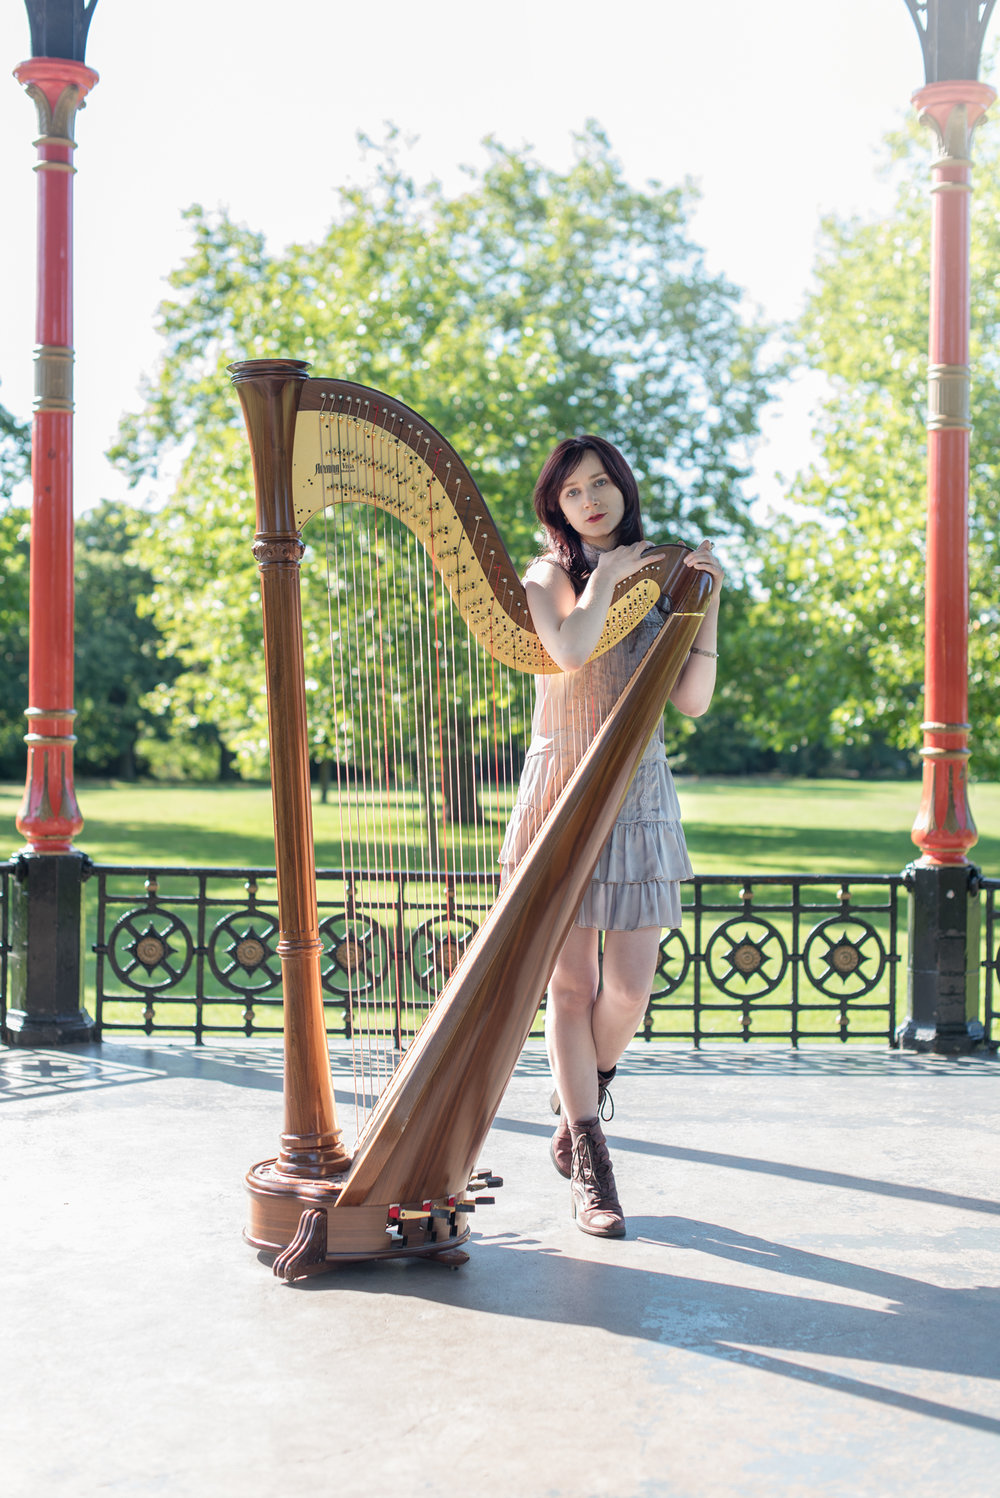 - Emily has the rare combination of genuine friendliness and a high level of professionalism that makes for an excellent photographer. She was understanding of the difficulties of shooting with a 6ft concert harp and delivered the finished product in record time!Julia Mascetti, Harpist